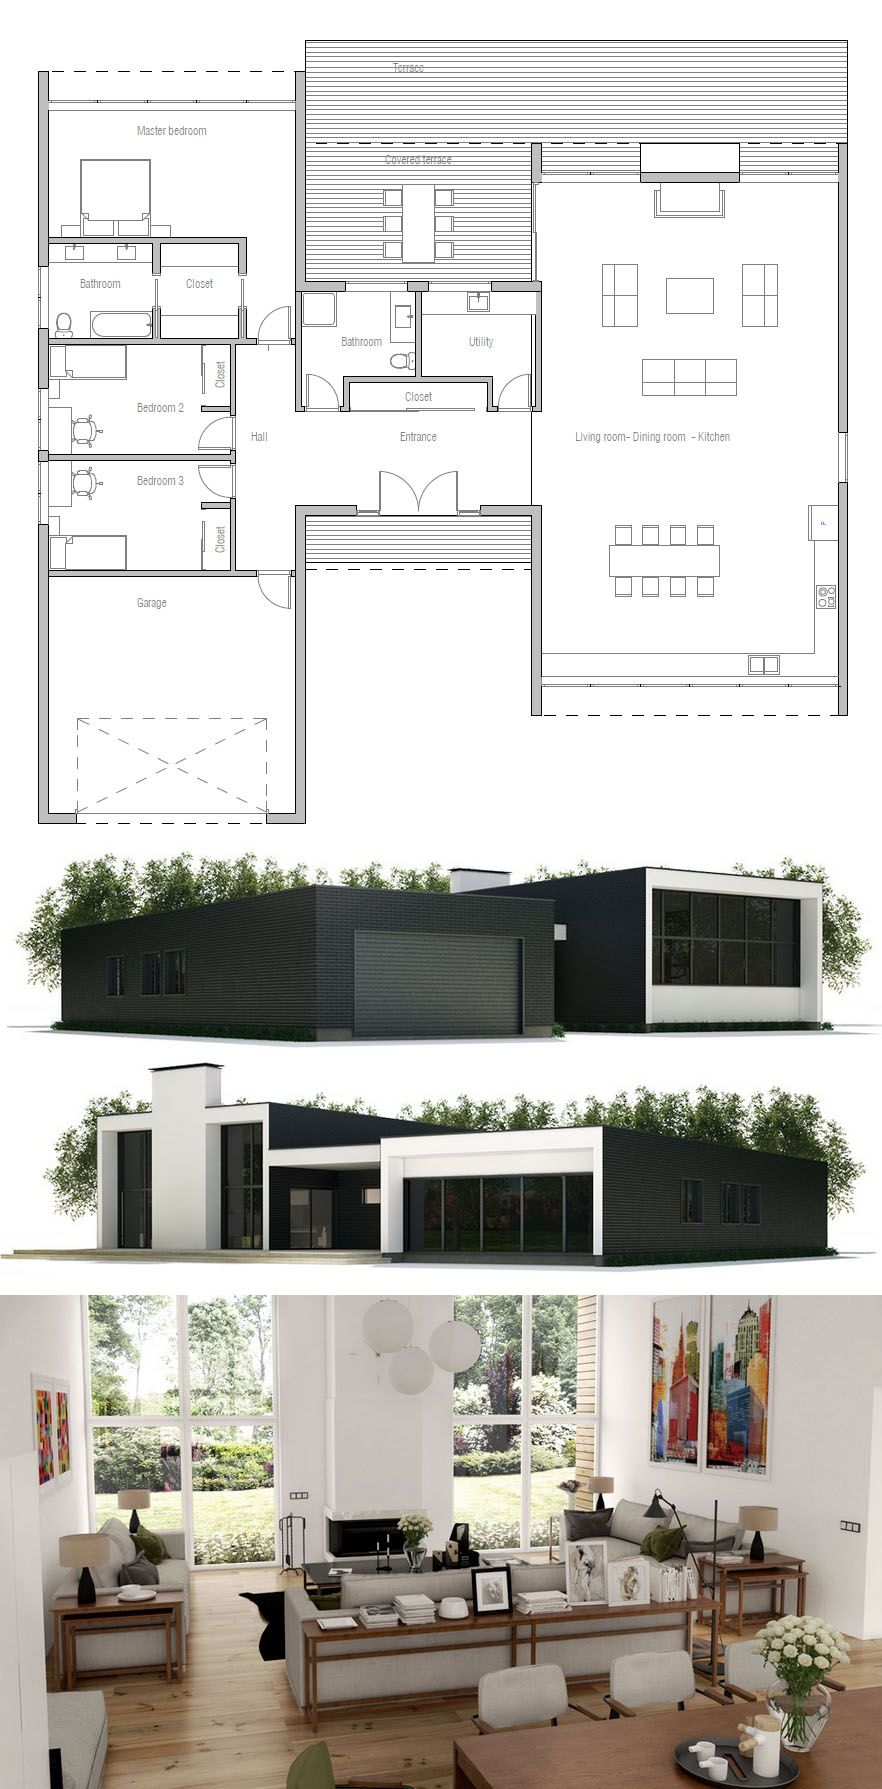 Architecture home plans house designs also projetos